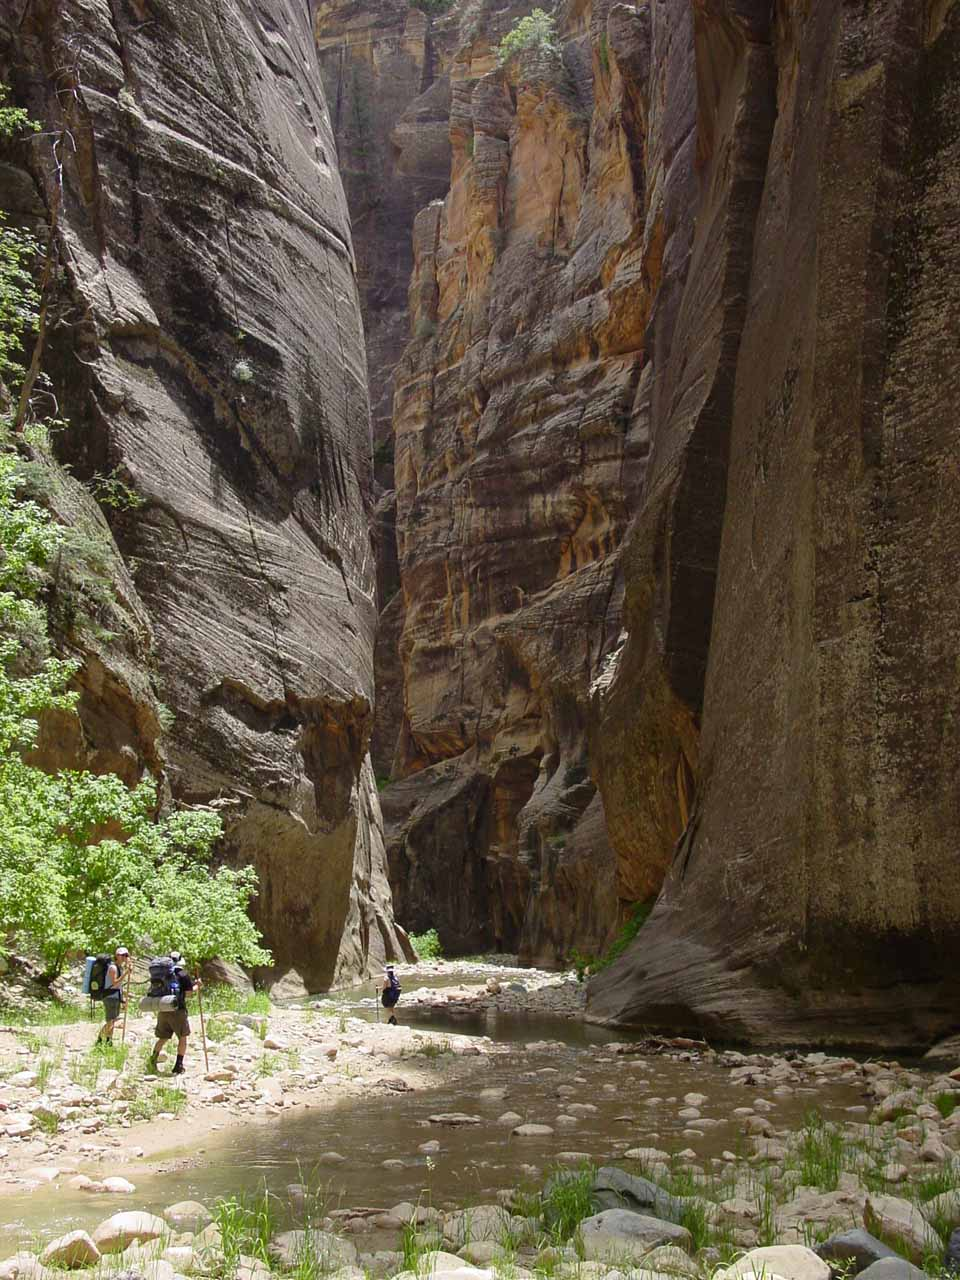 This part of the Narrows was near the Deep Creek confluence where the Virgin River all of the sudden grew three-fold